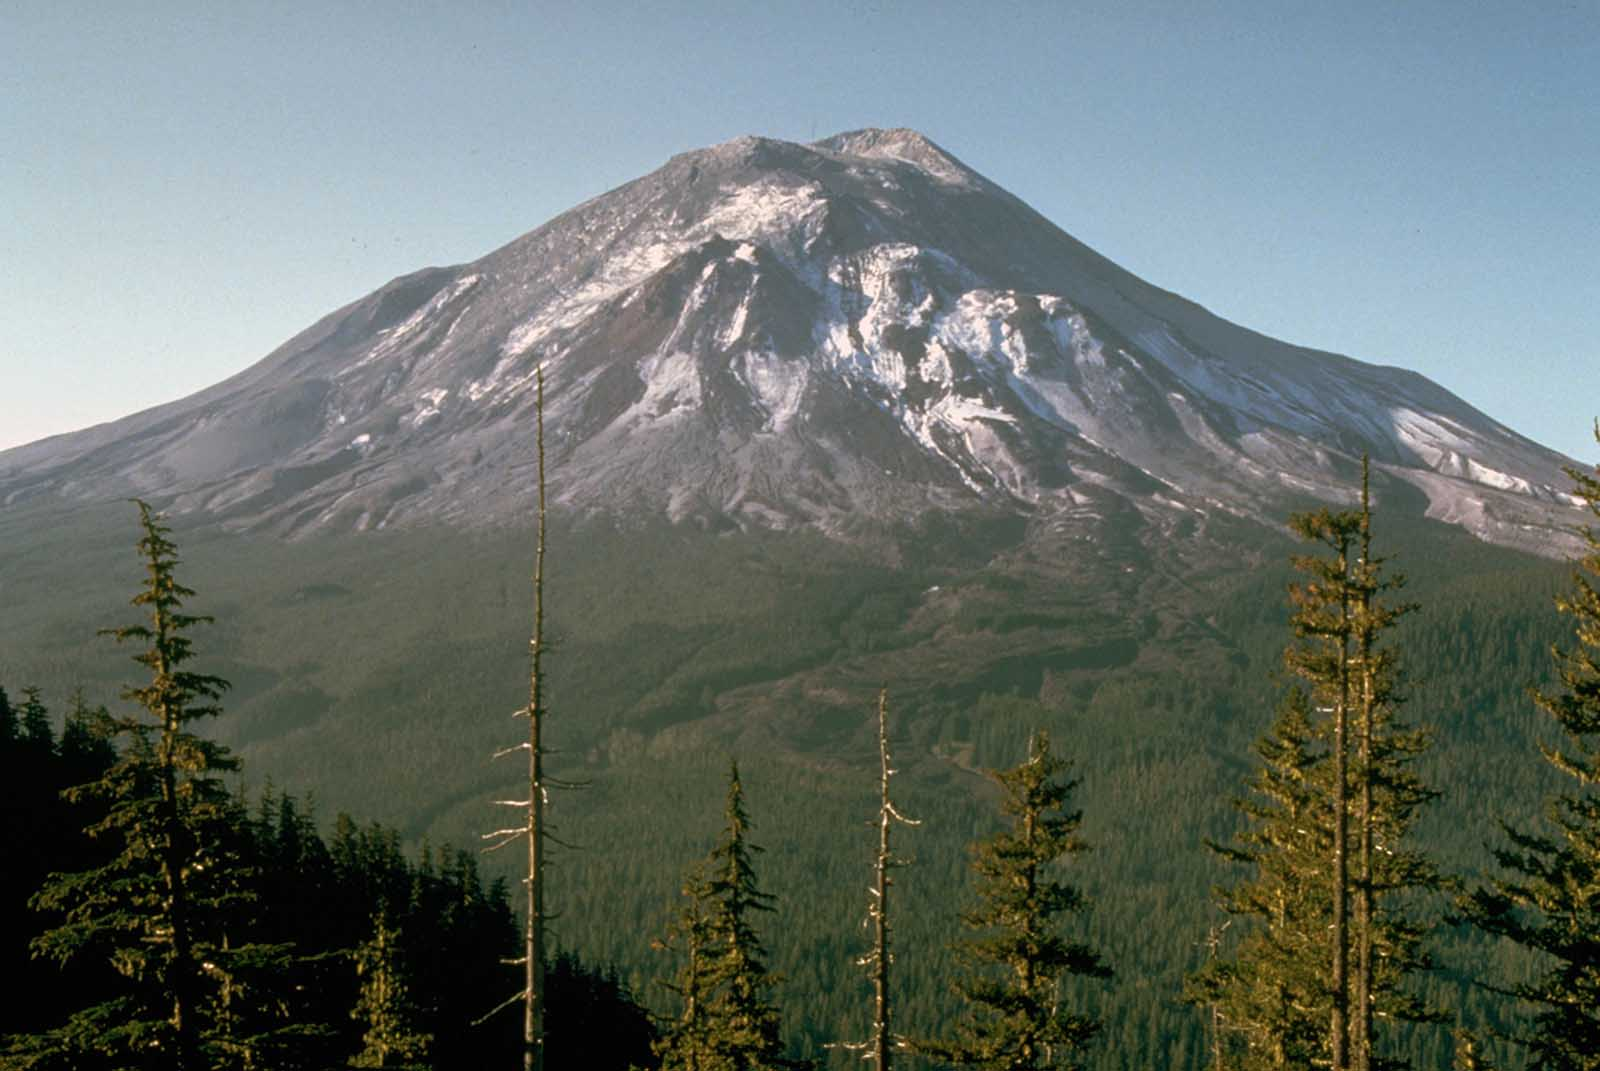 Mount St. Helens, as it looked the day before its massive eruption, on May 17, 1980.